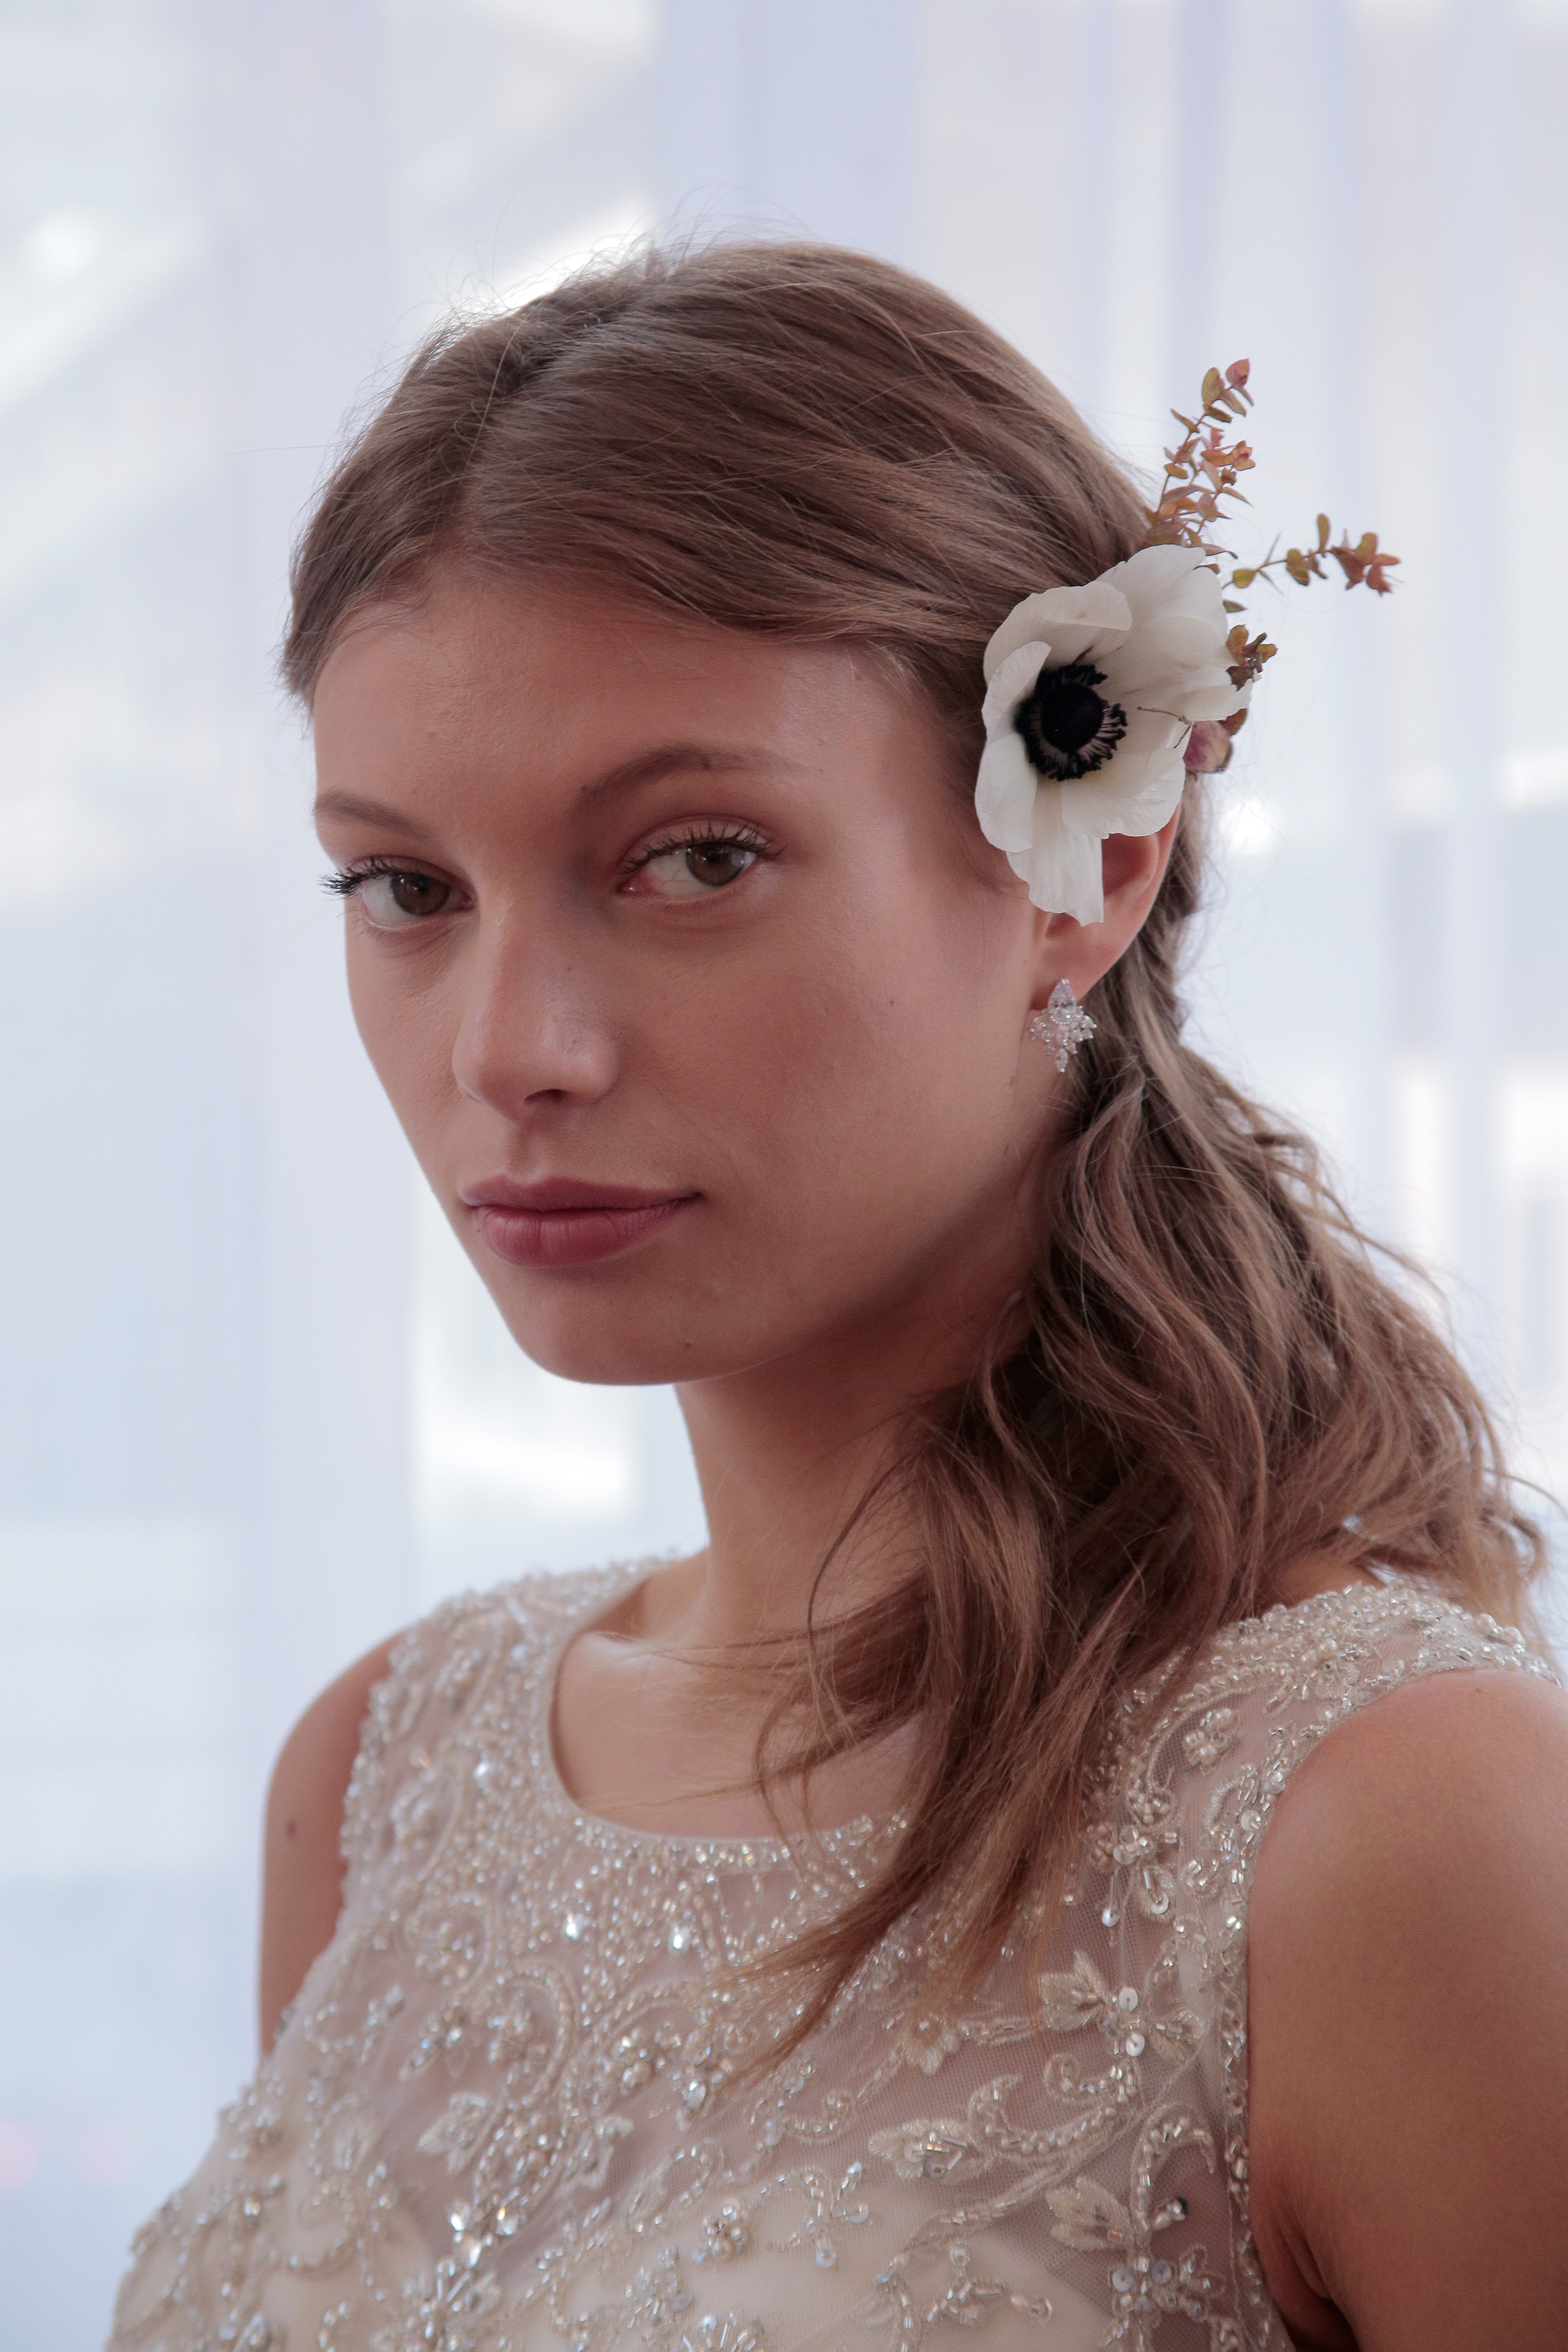 2017 wedding hair trends that are here to stay, according to experts